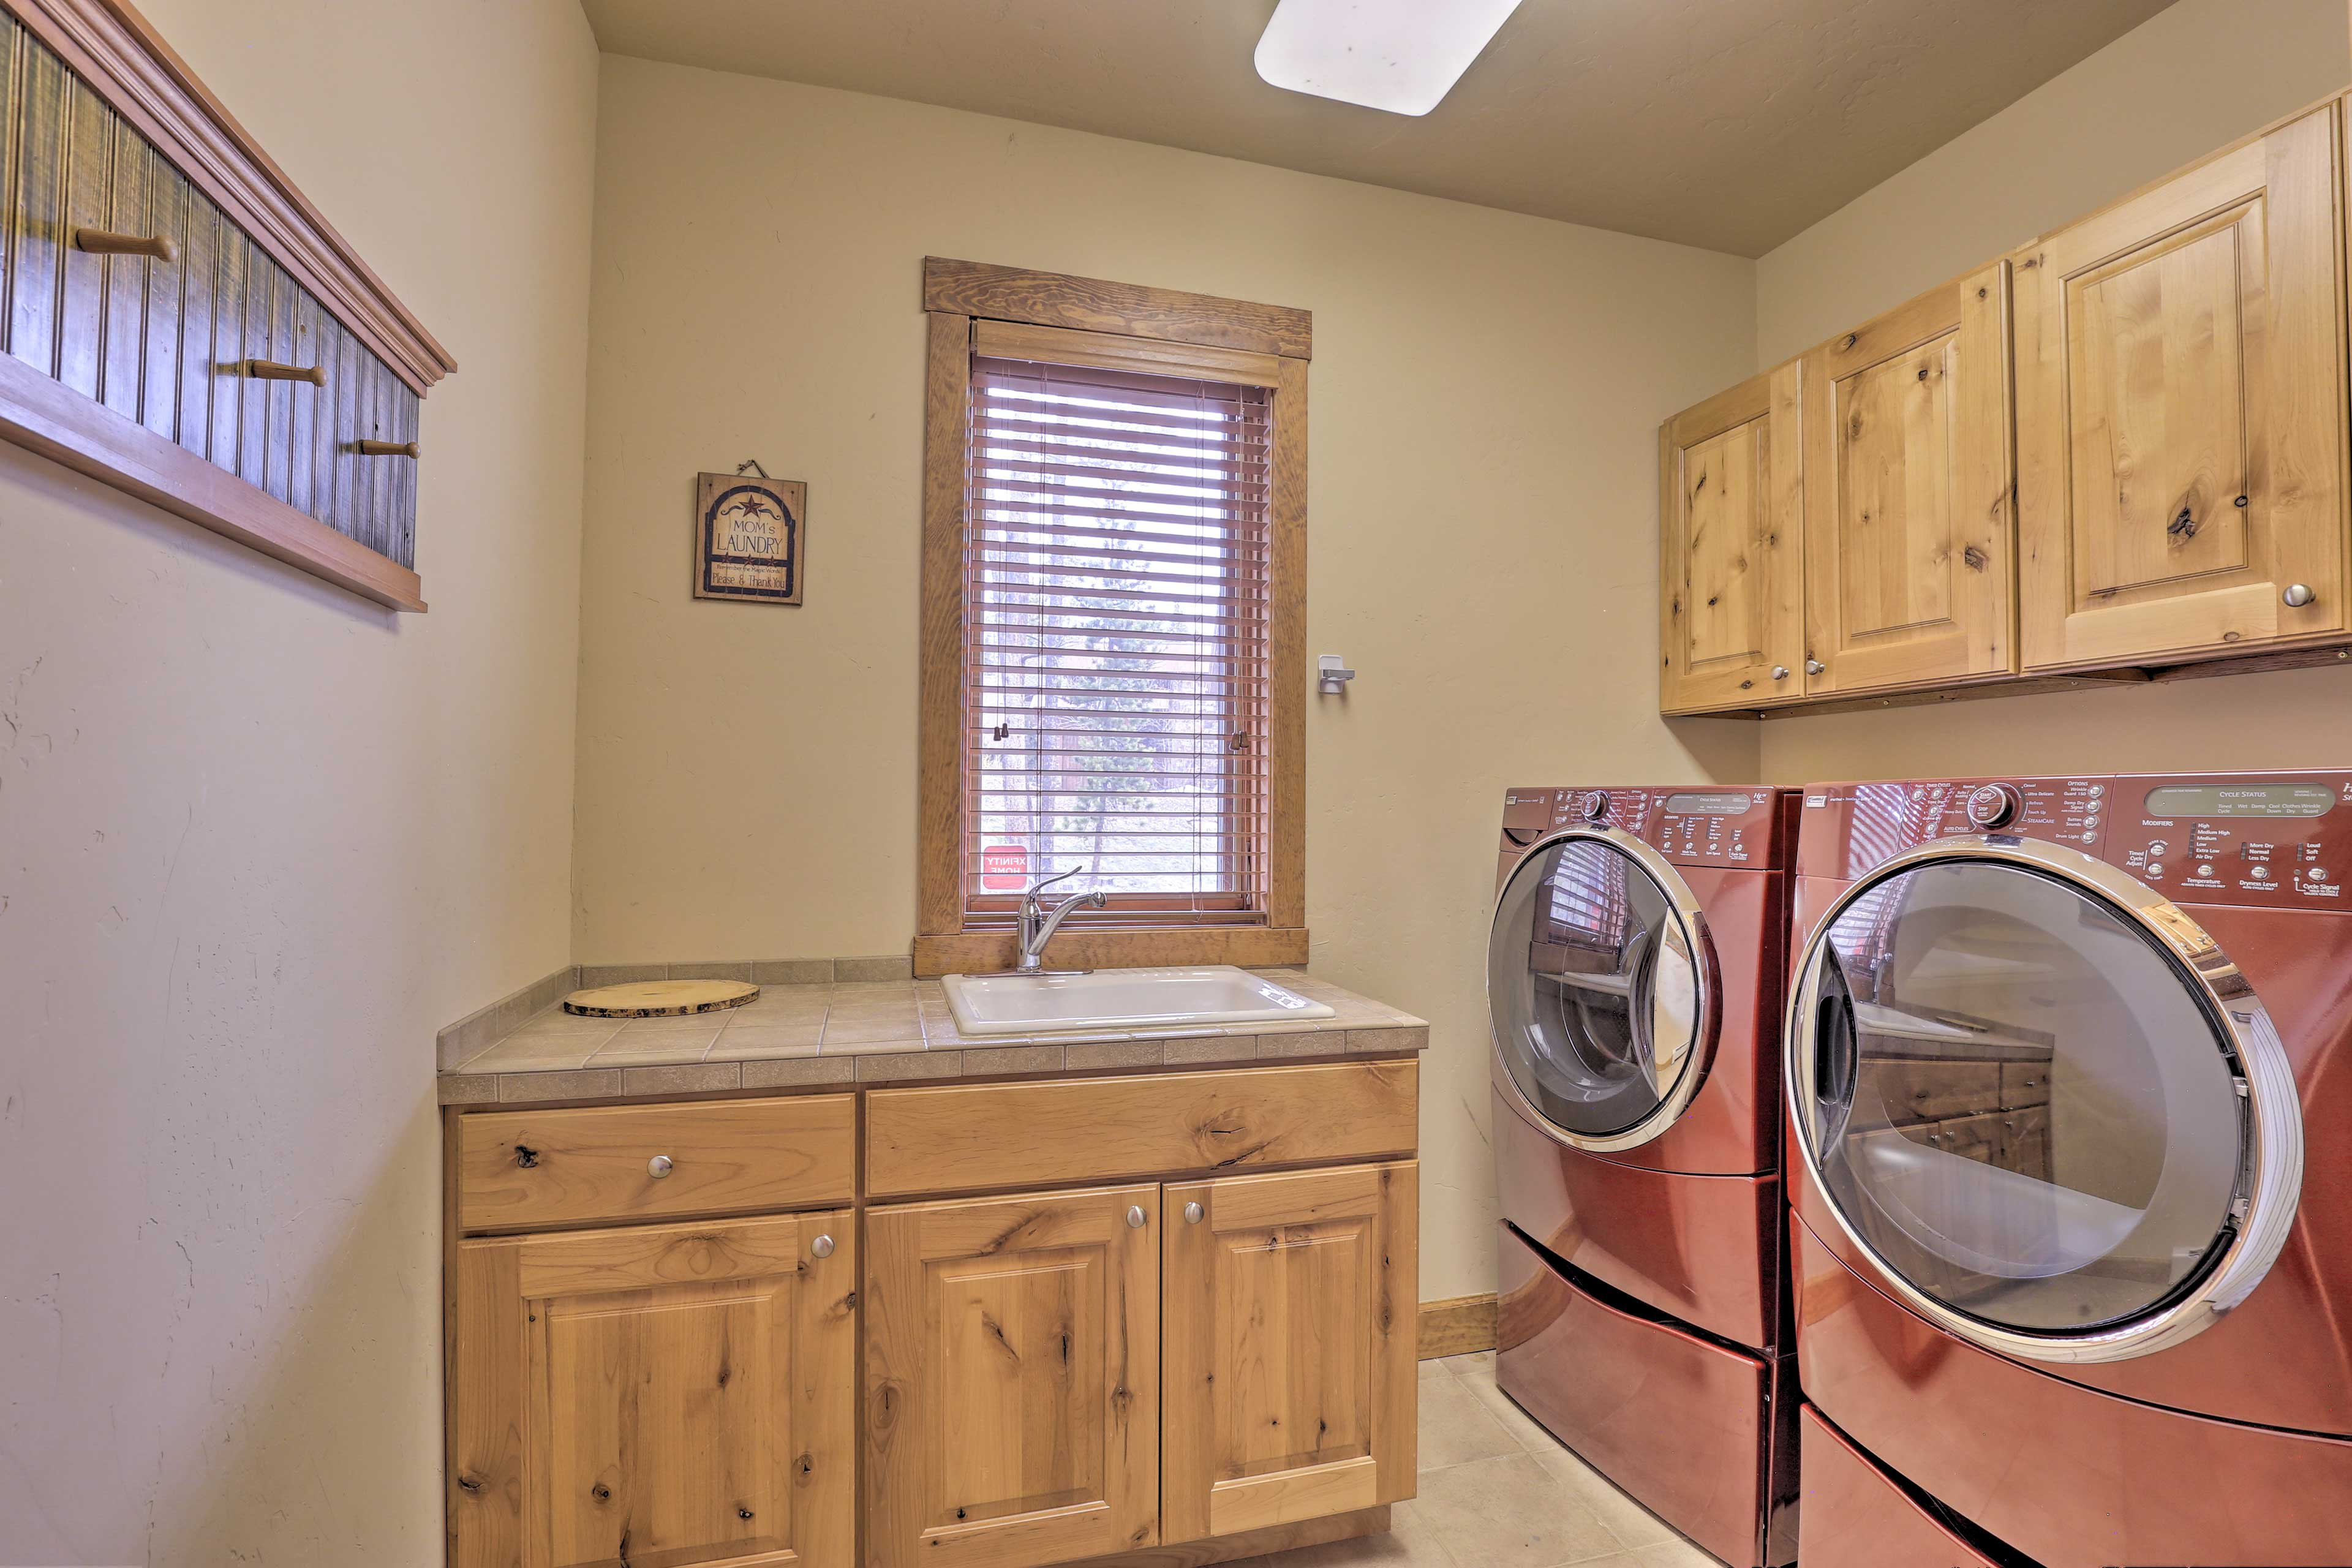 You'll appreciate the luxury of high-end front-loading laundry machines.